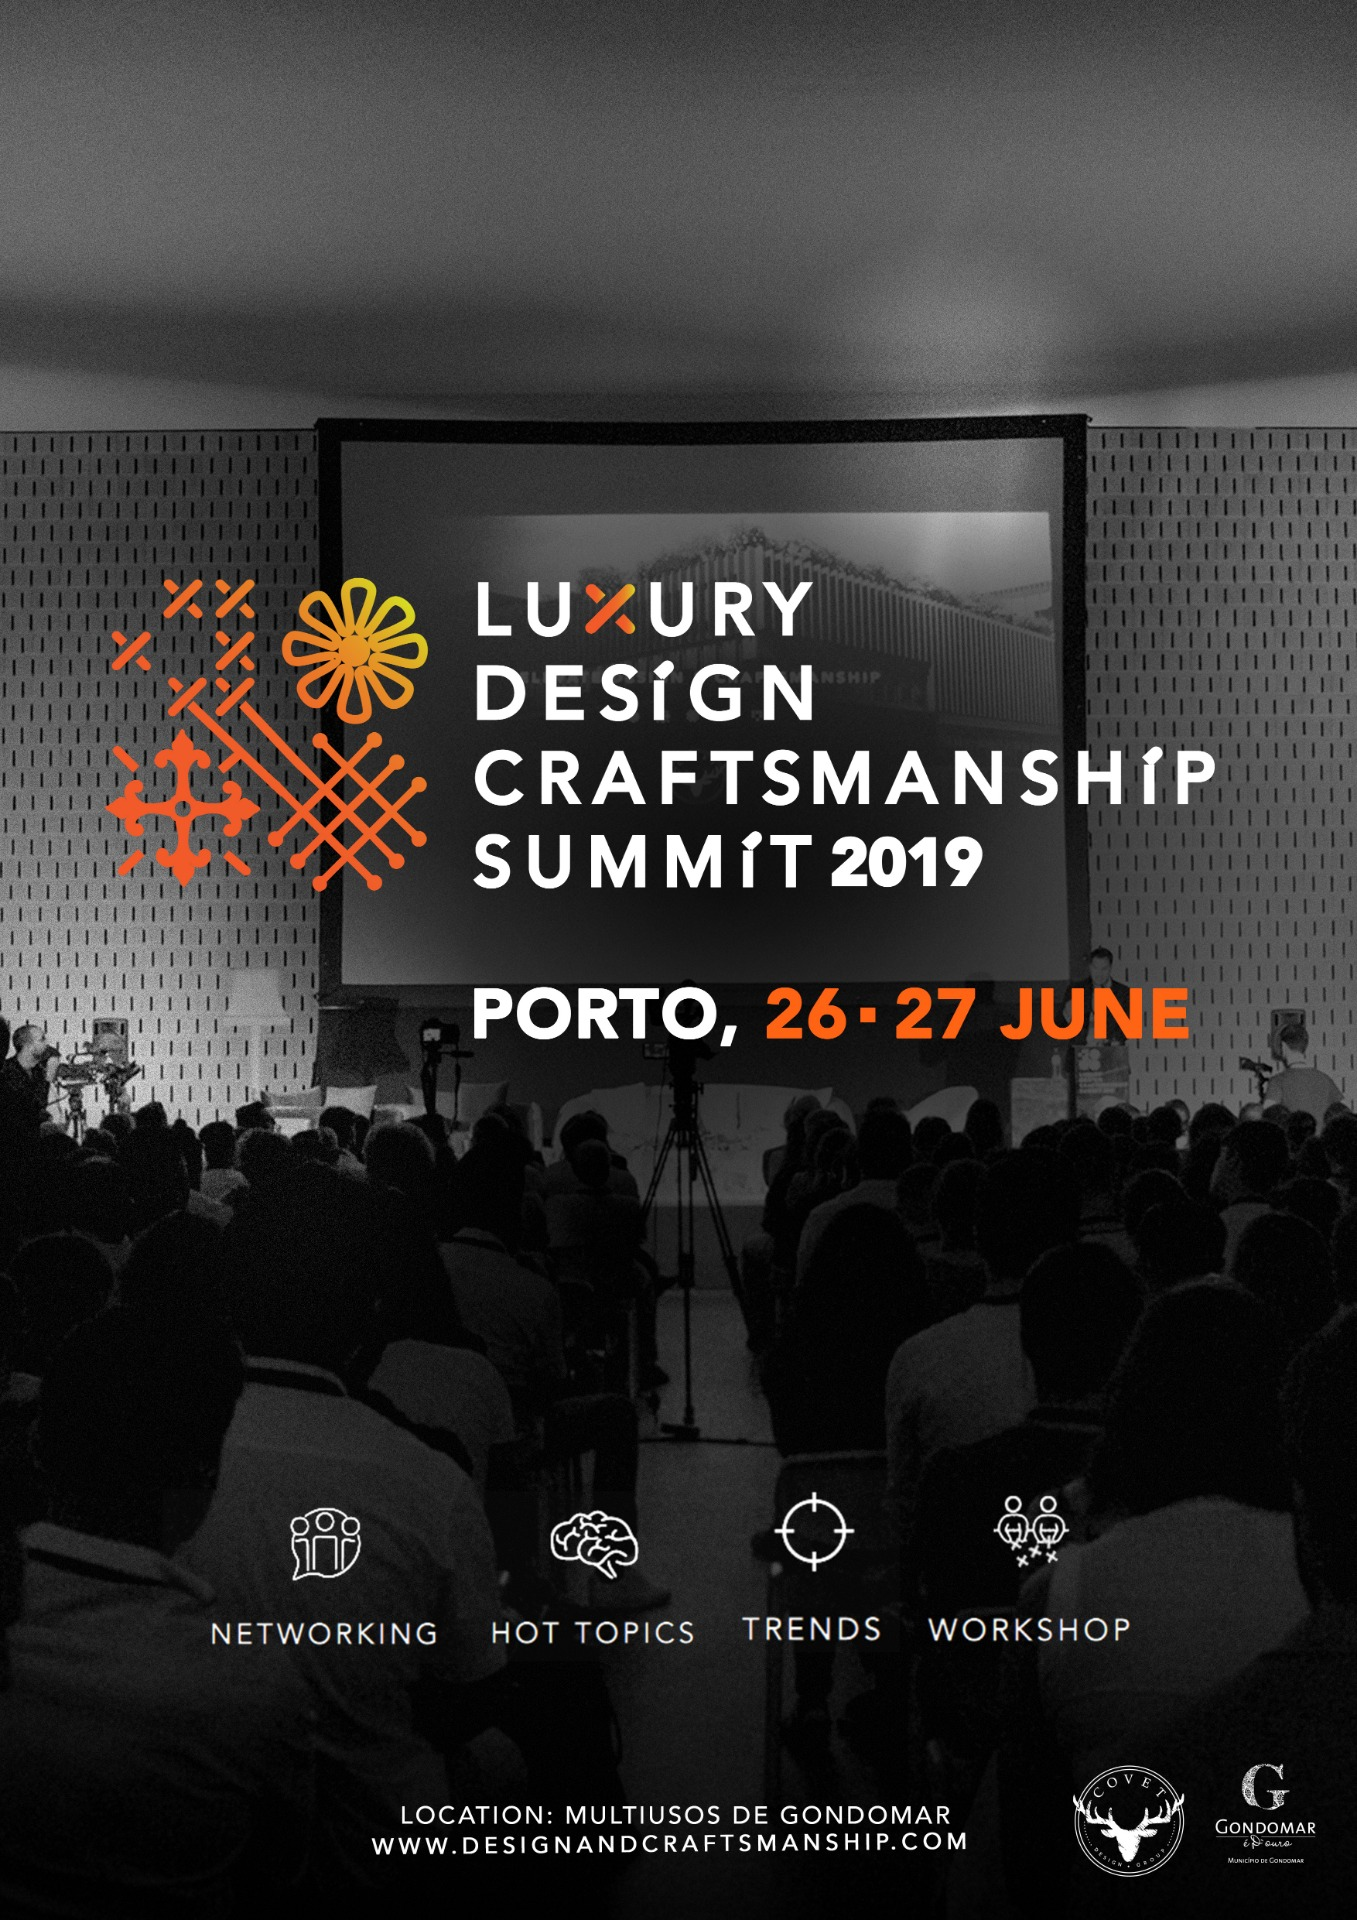 Presenting Summit 2019 – An Event Of Luxury Design and Craftmanship luxury design Presenting Summit 2019 – An Event Of Luxury Design and Craftmanship Celebrating Craftsmanship The Luxury DesignCraftsmanship Summit 2019 2